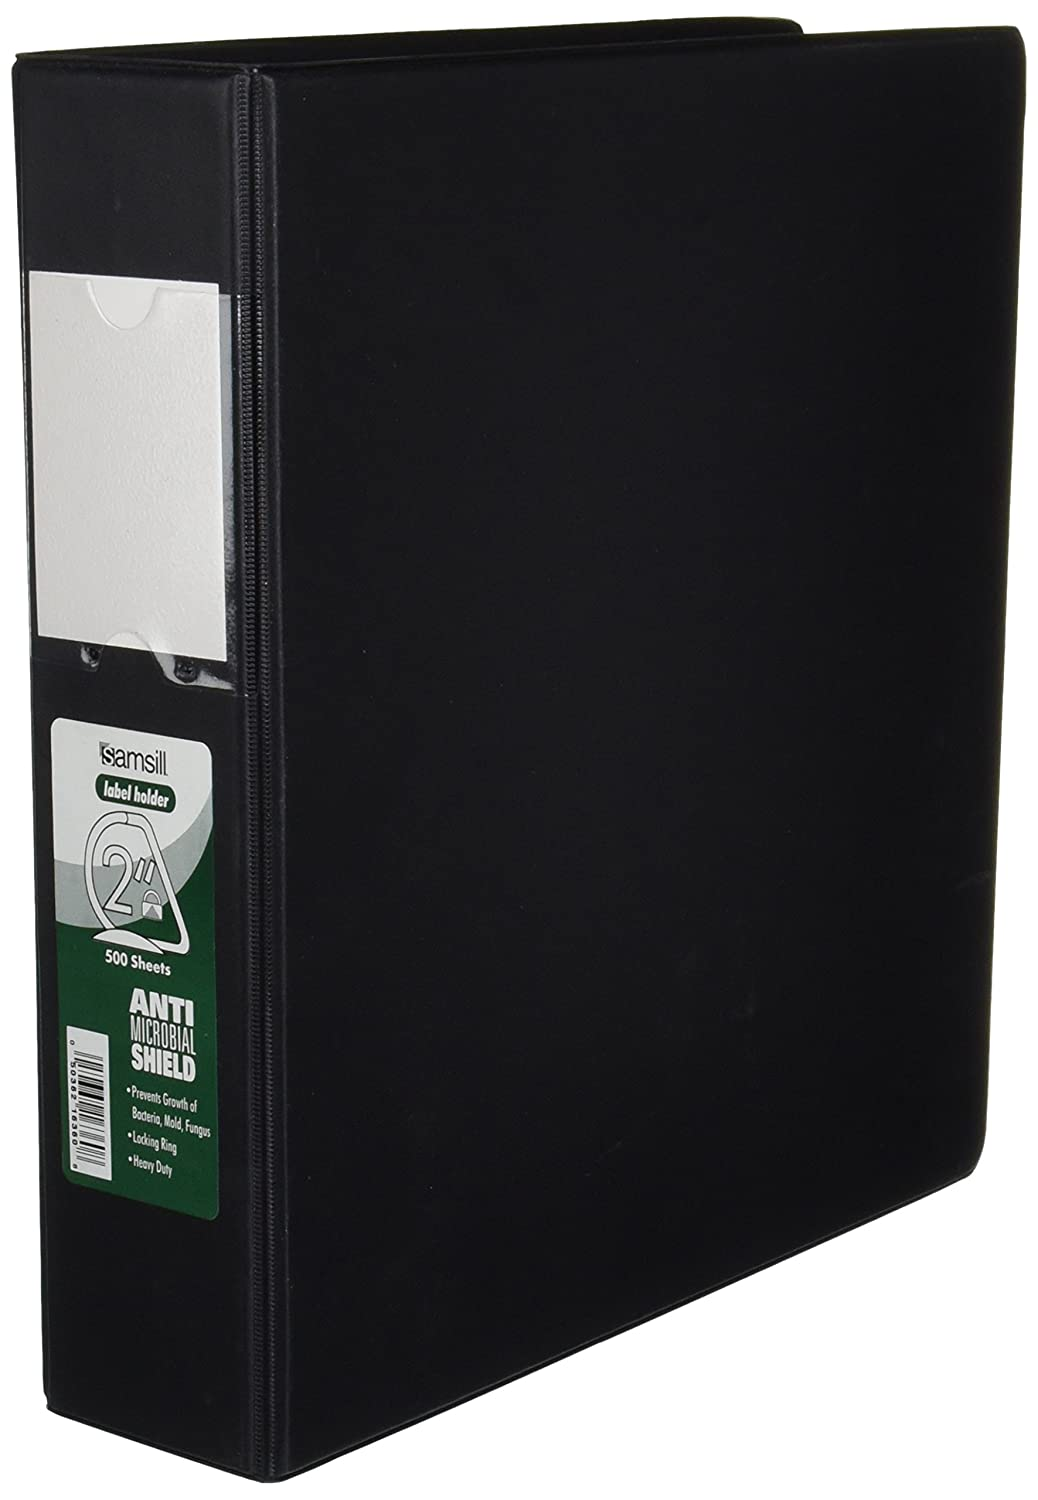 4 Inch Capacity Reference Binder with Label Holder Protected by Antimicrobial Additive Samsill 14392 Clean Touch 3 Ring Binder Locking Round Ring Blue